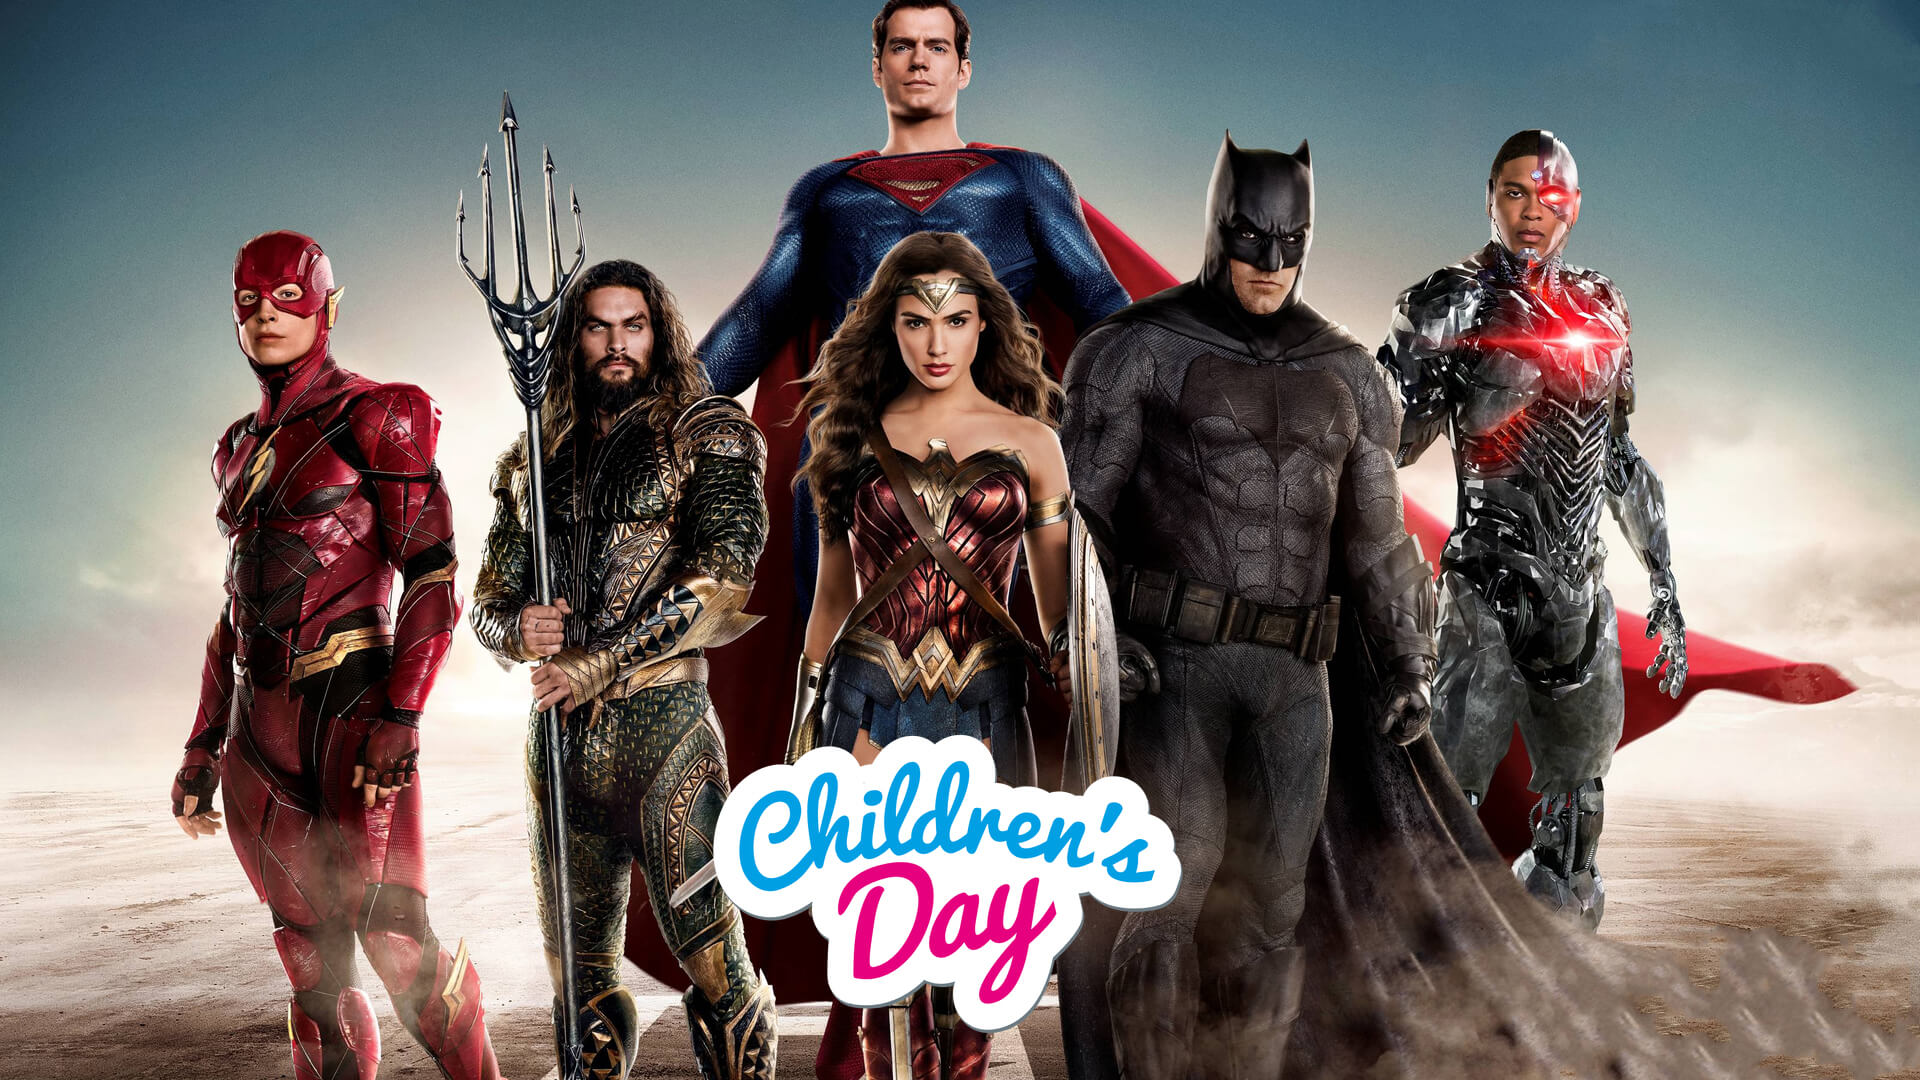 justice league wishes happy childrens day hd wallpaper